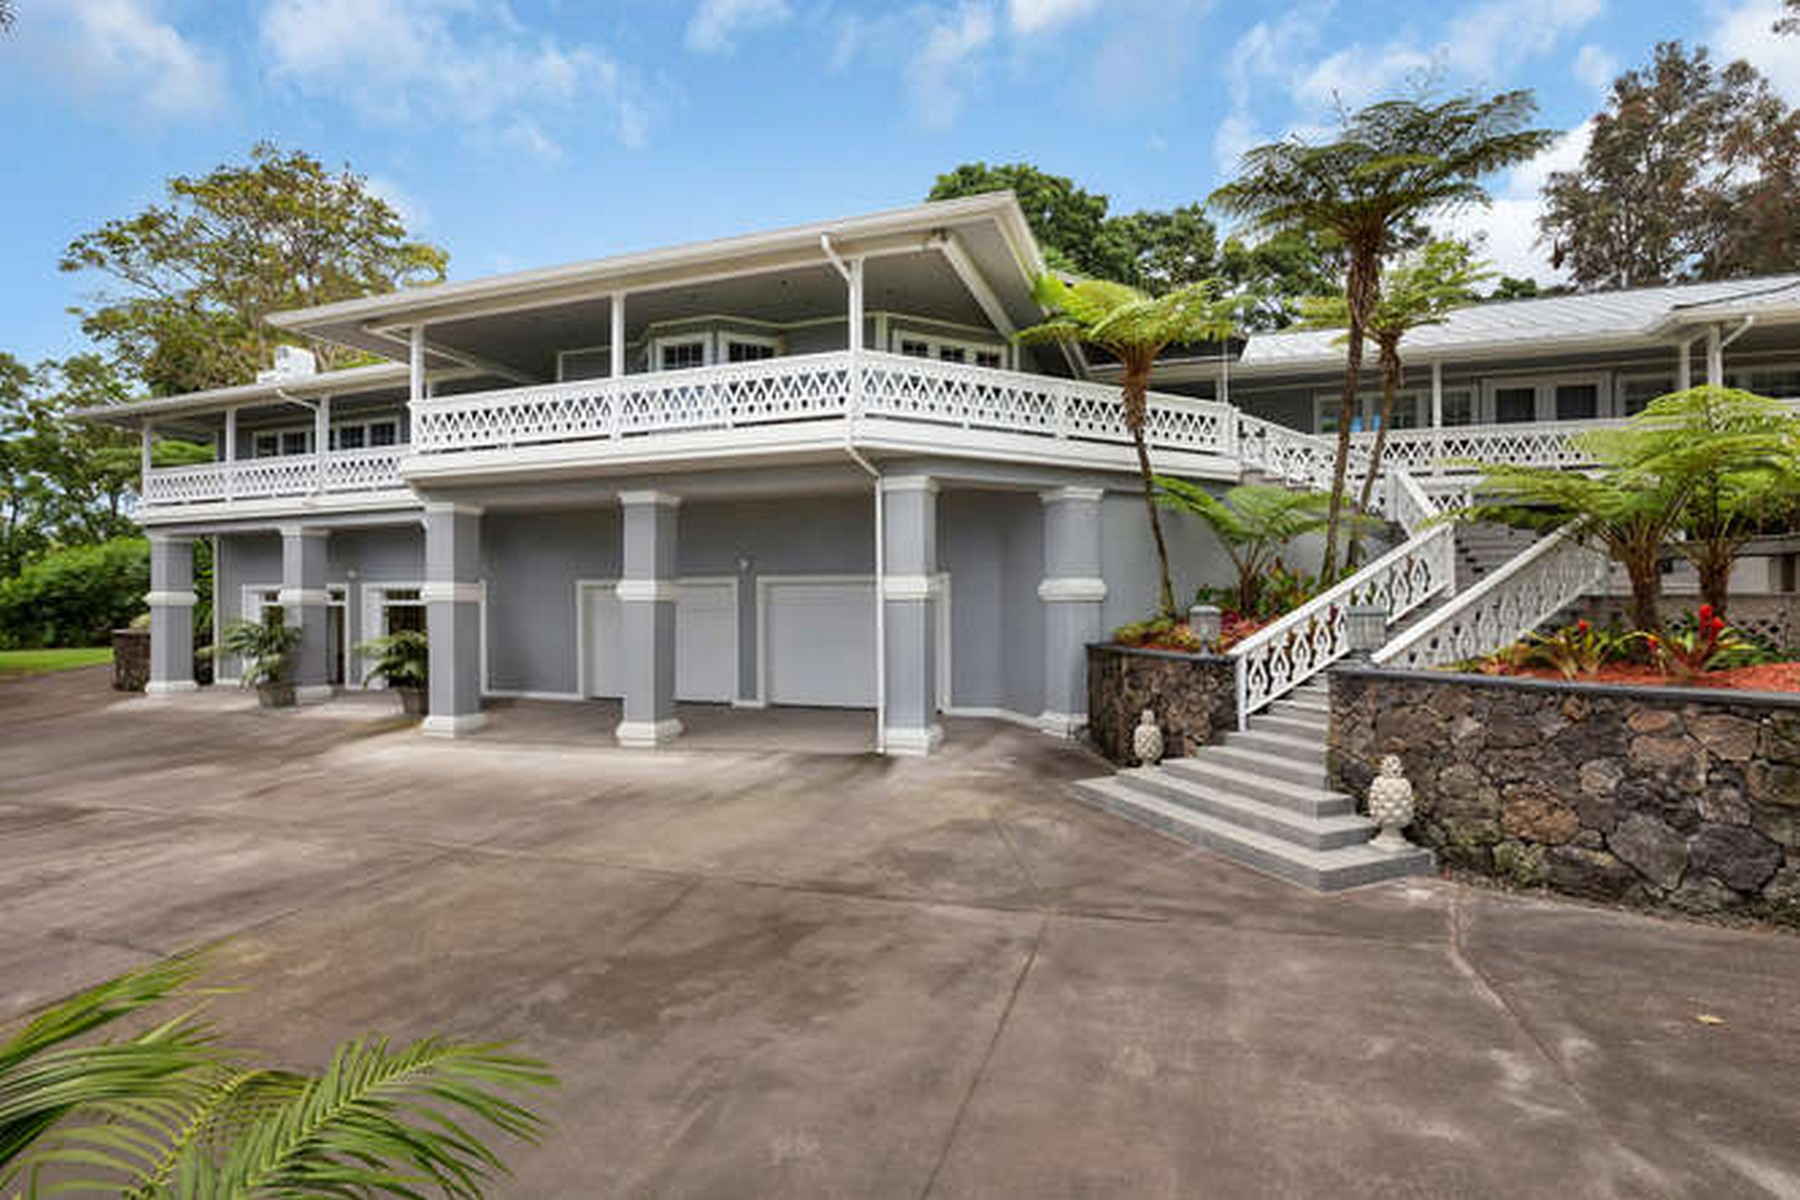 Single Family Home for Sale at Kaloko Mauka 73-4671 KahuaLani Rd. Kailua-Kona, Hawaii, 96740 United States